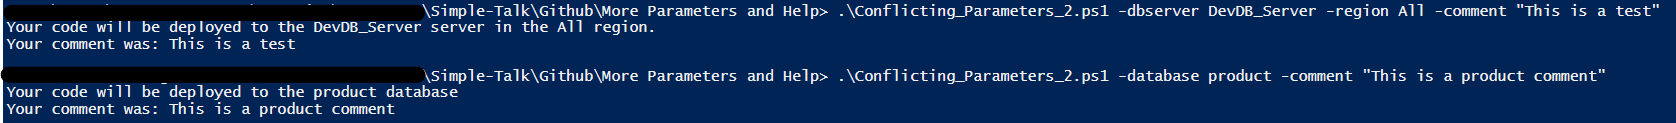 word image 9 How to Add Help to PowerShell Scripts